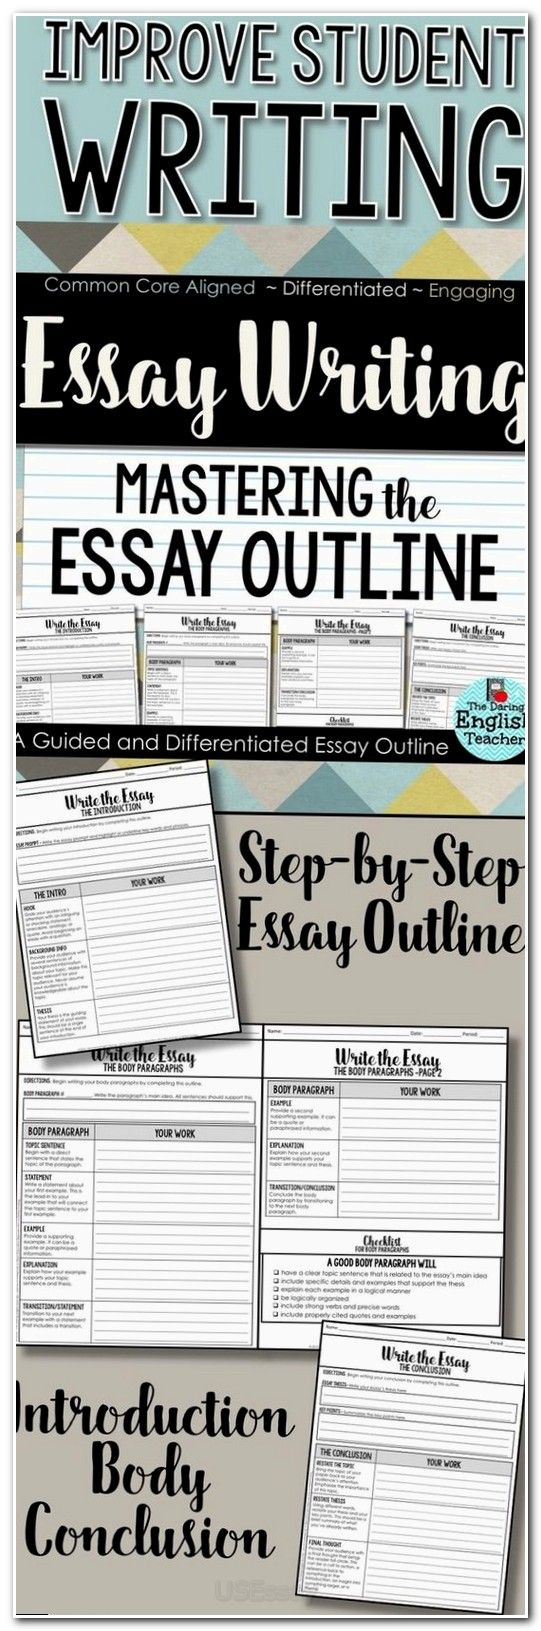 essay essaywriting writing colleges, reflection